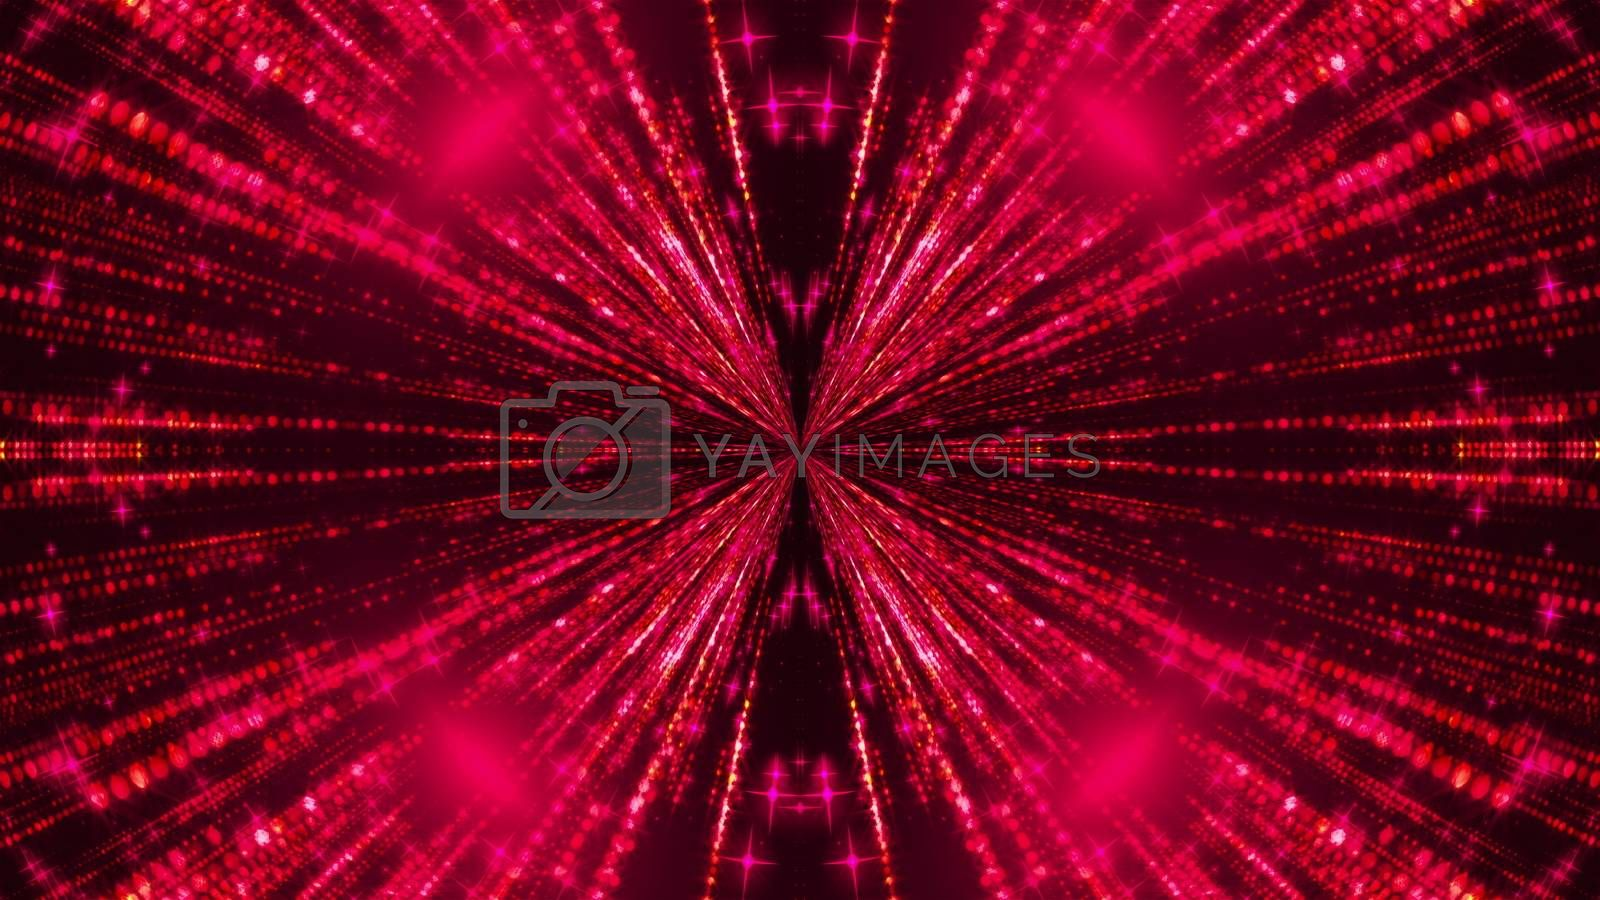 Beautiful abstract symmetry kaleidoscope with shiny neon lines, 3d rendering backdrop, computer generating background